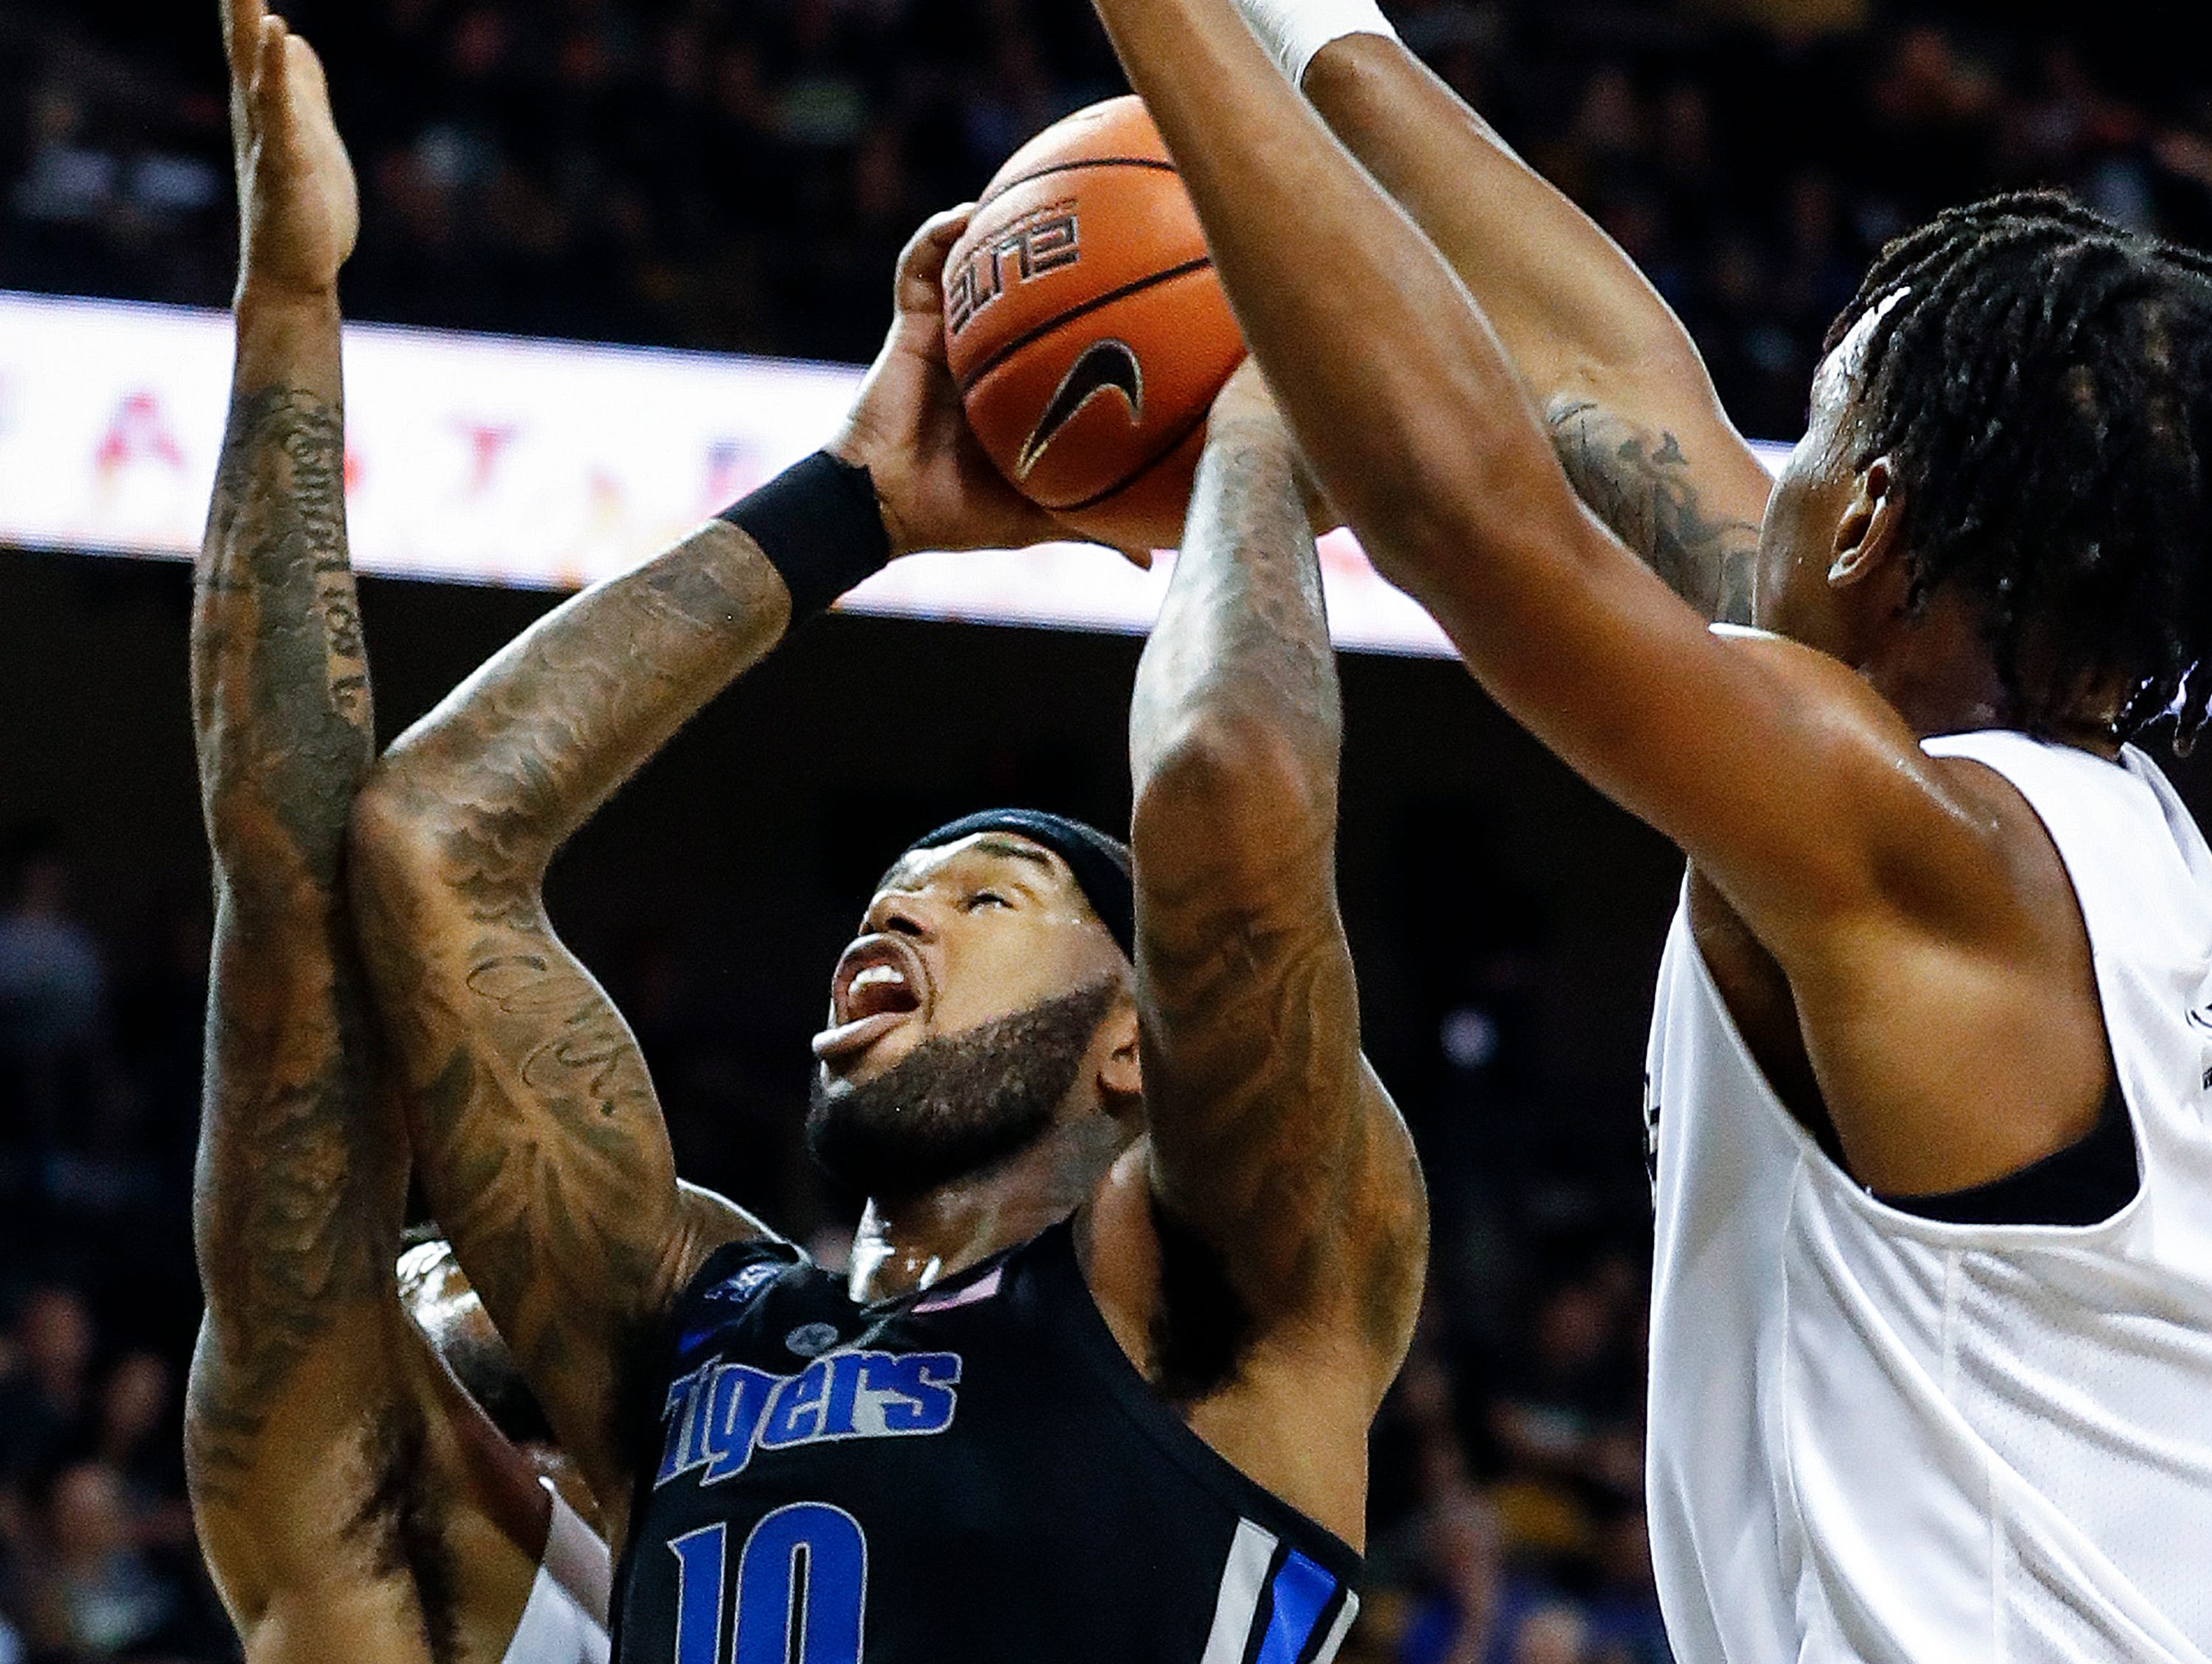 Memphis forward Mike Parks Jr. (middle) grabs a rebound in front of UCF defenders Dayon Griffin (left) and Terrell Allen (right) during action in Orlando Saturday, February 16, 2019.